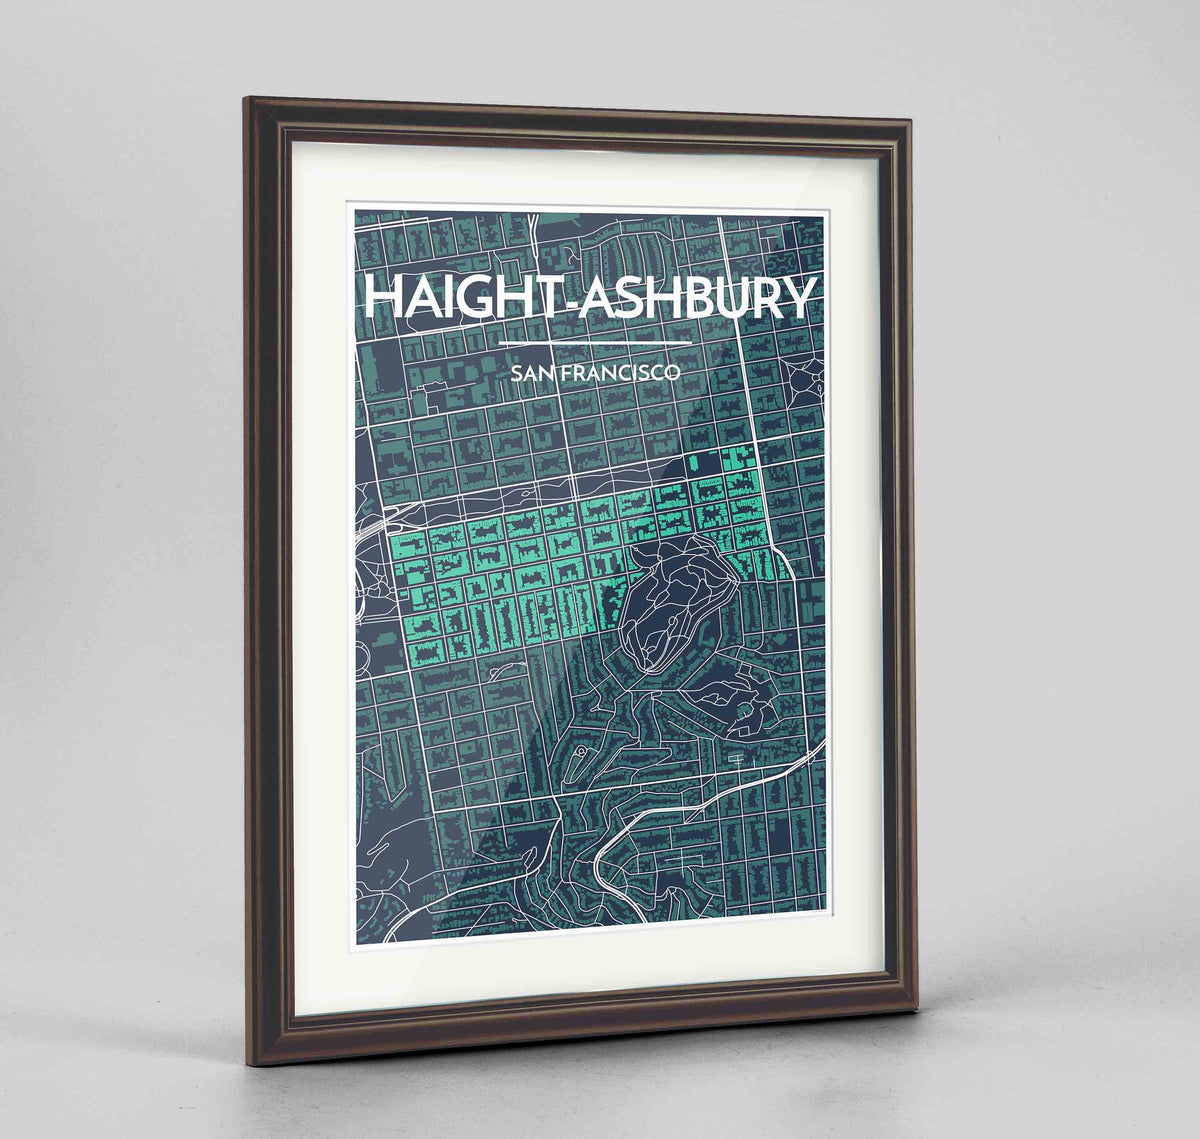 "Framed Haight-Ashbury San Francisco Map Art Print 24x36"" Traditional Walnut frame Point Two Design Group"